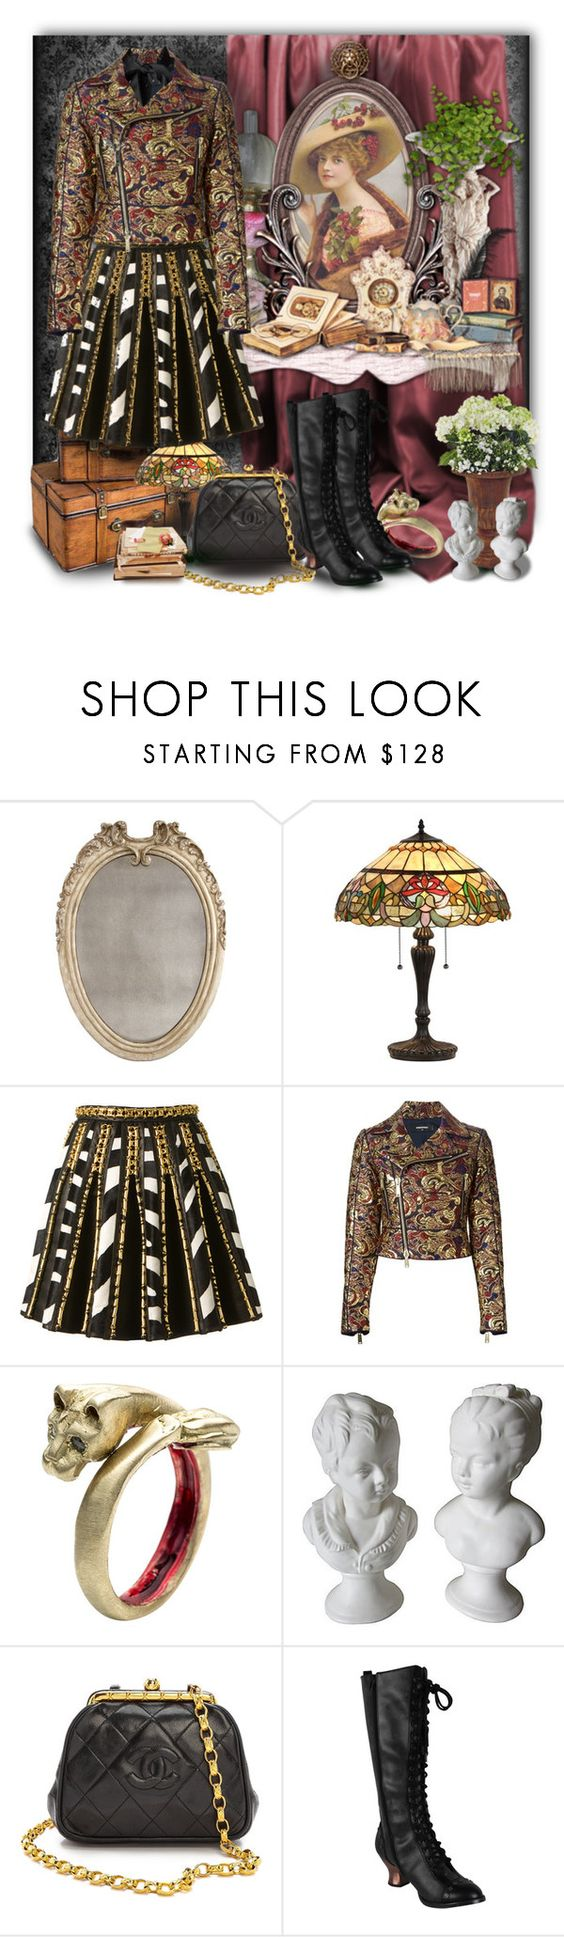 """""""The Grand Impression"""" by maneevanit ❤ liked on Polyvore featuring Bliss Studio, Trilogy, Balmain, Dsquared2, by / natalie frigo, Chanel, HADES, Dolce&Gabbana, skirt and jacket"""